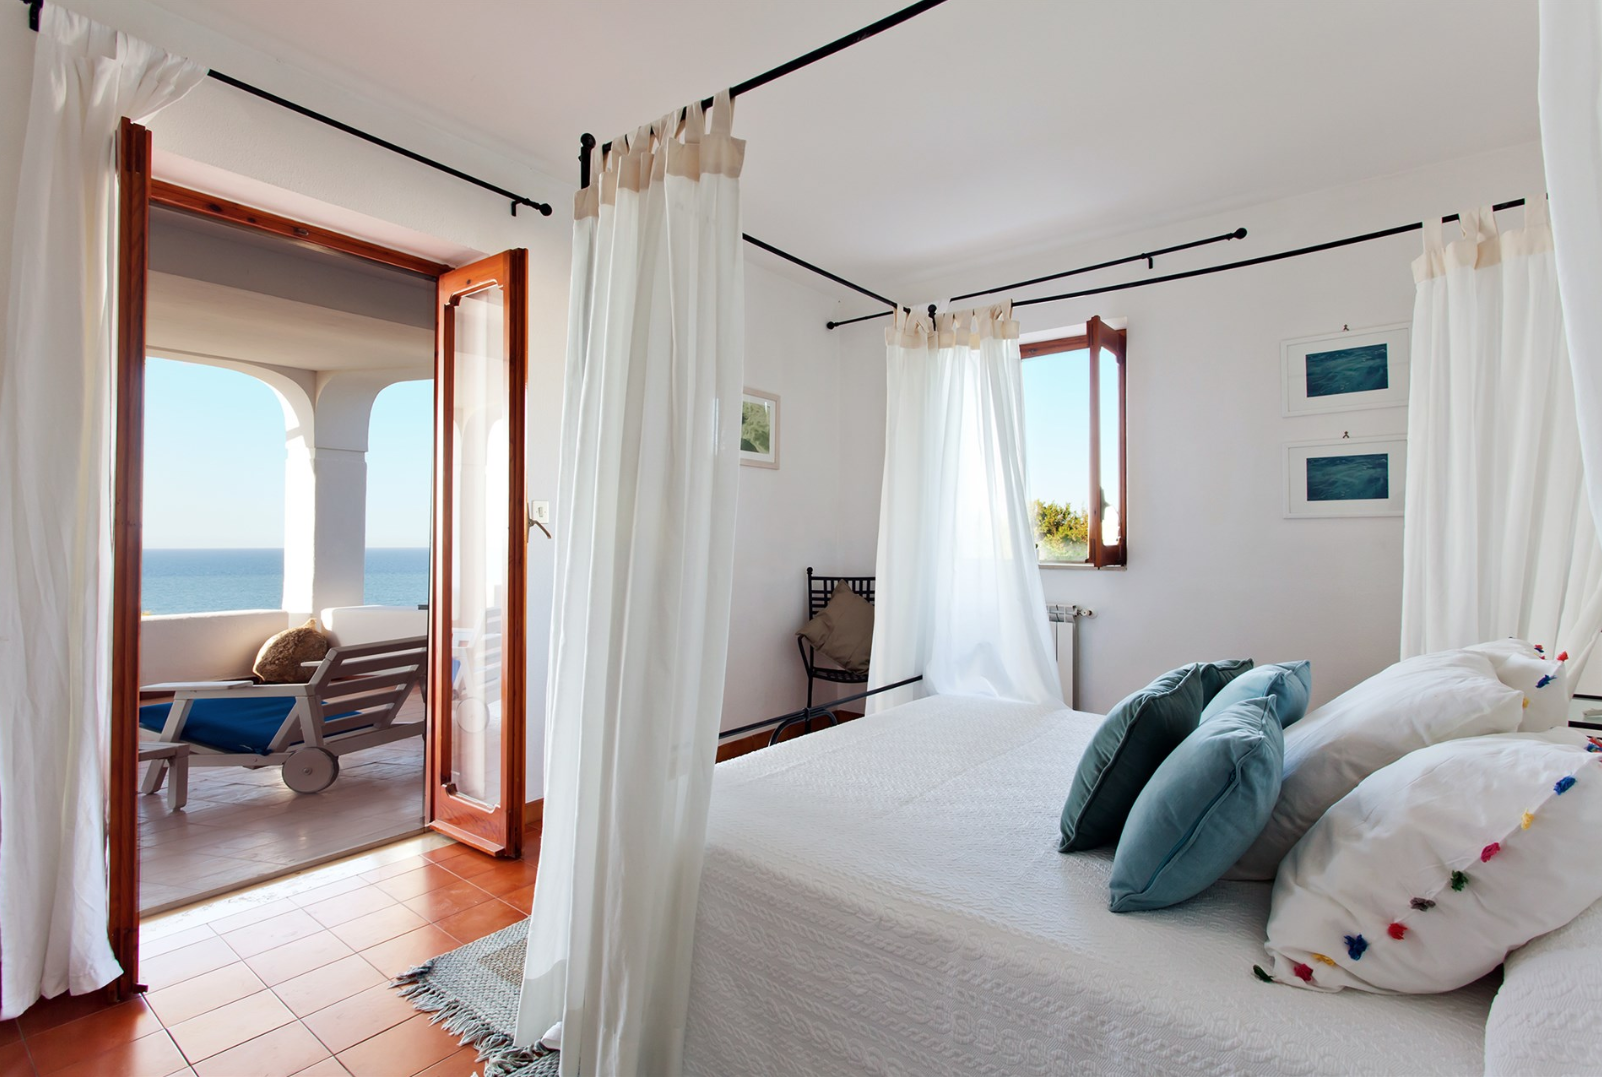 each bedroom has an en-suite bathroom and access to the balcony with sea view